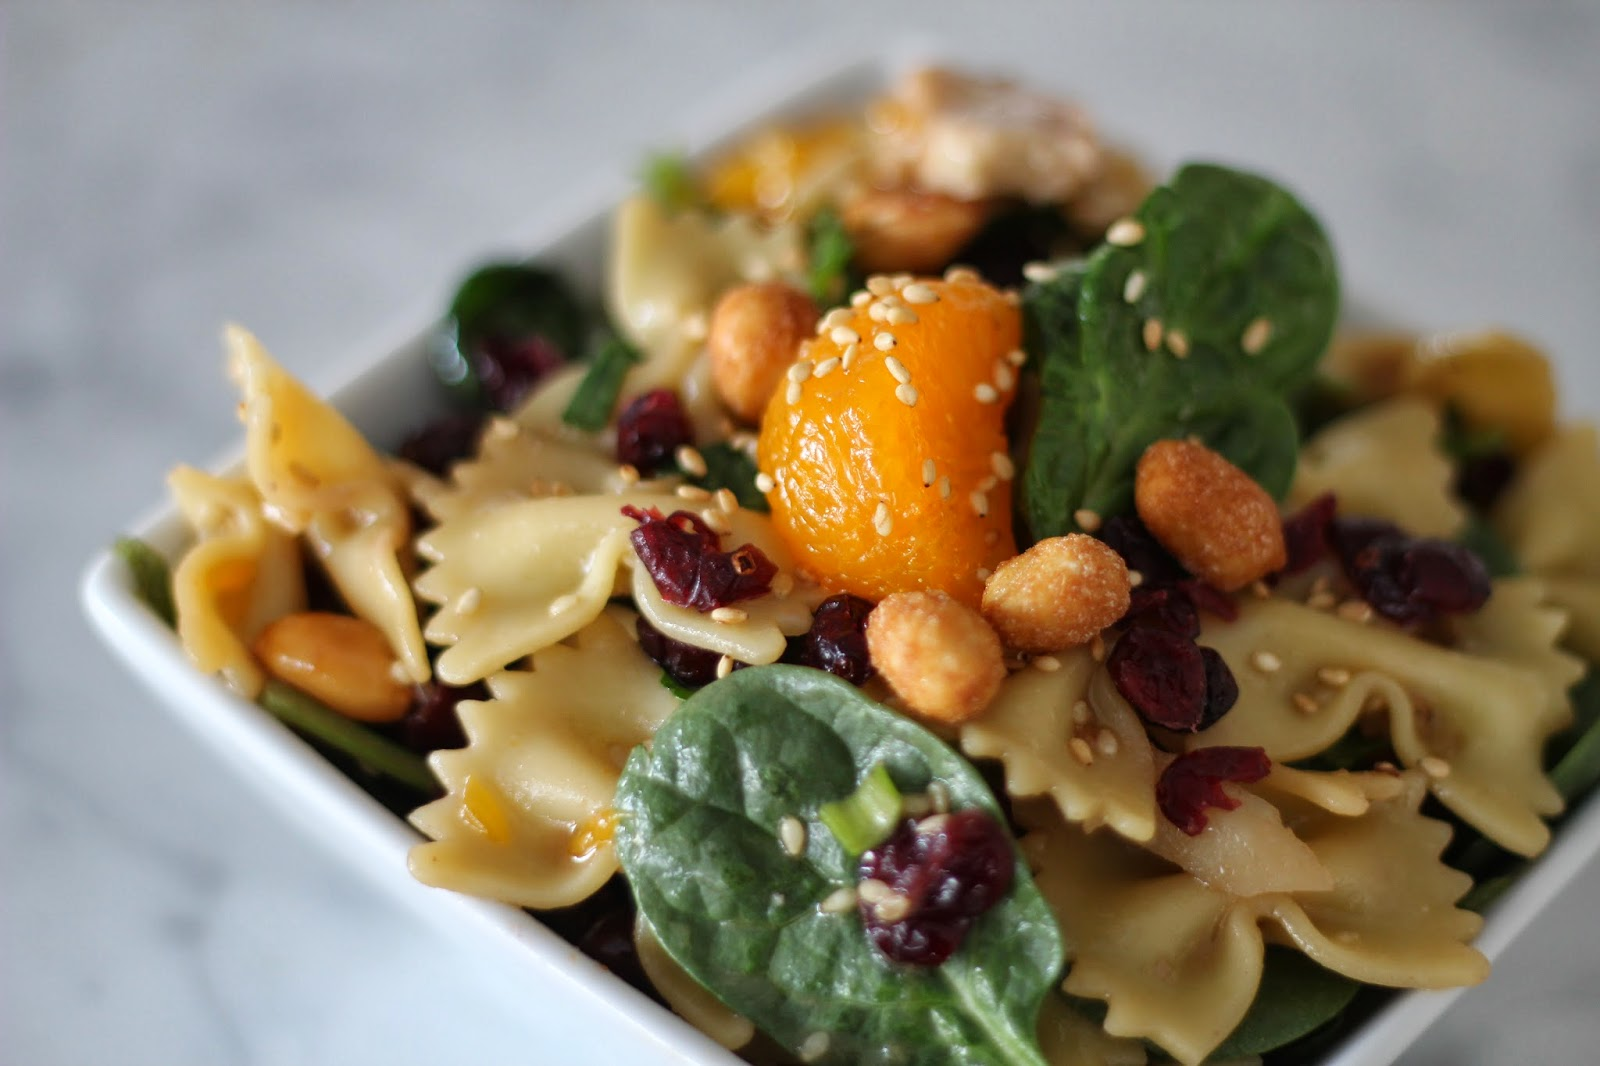 Bountiful Kitchen: Spinach, Chicken and Bowtie Pasta Salad for 100